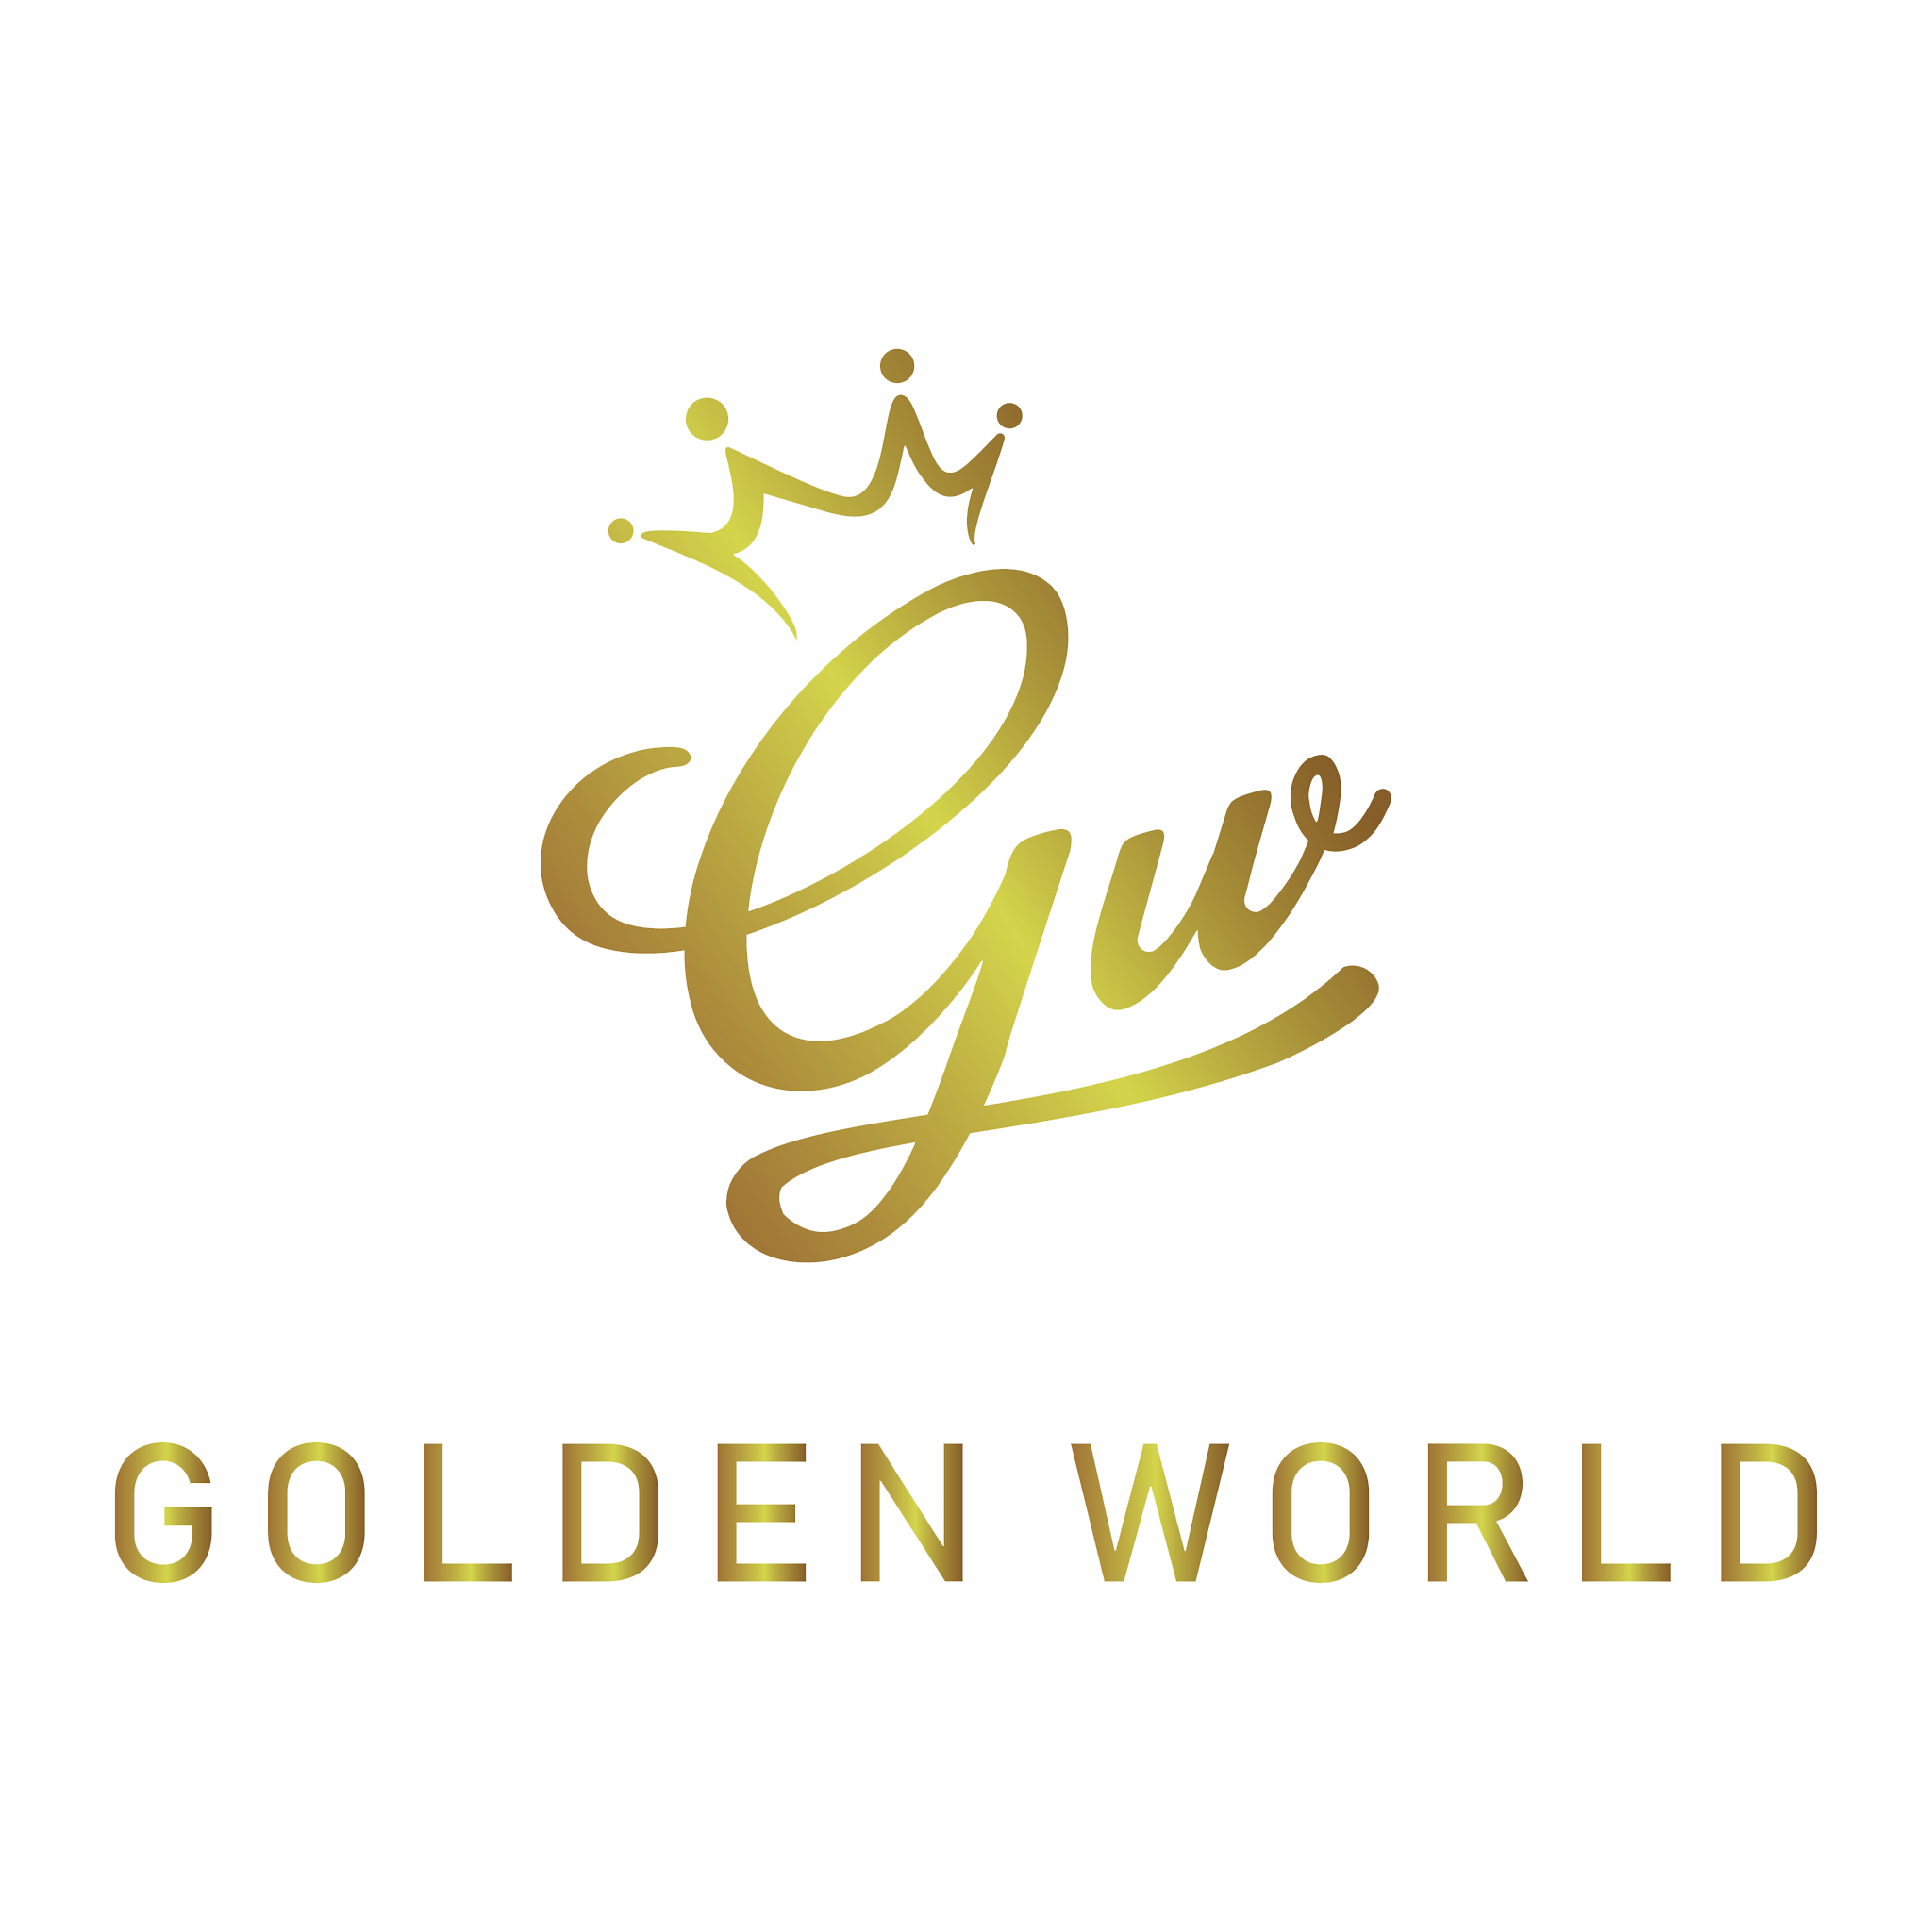 Golden World Group